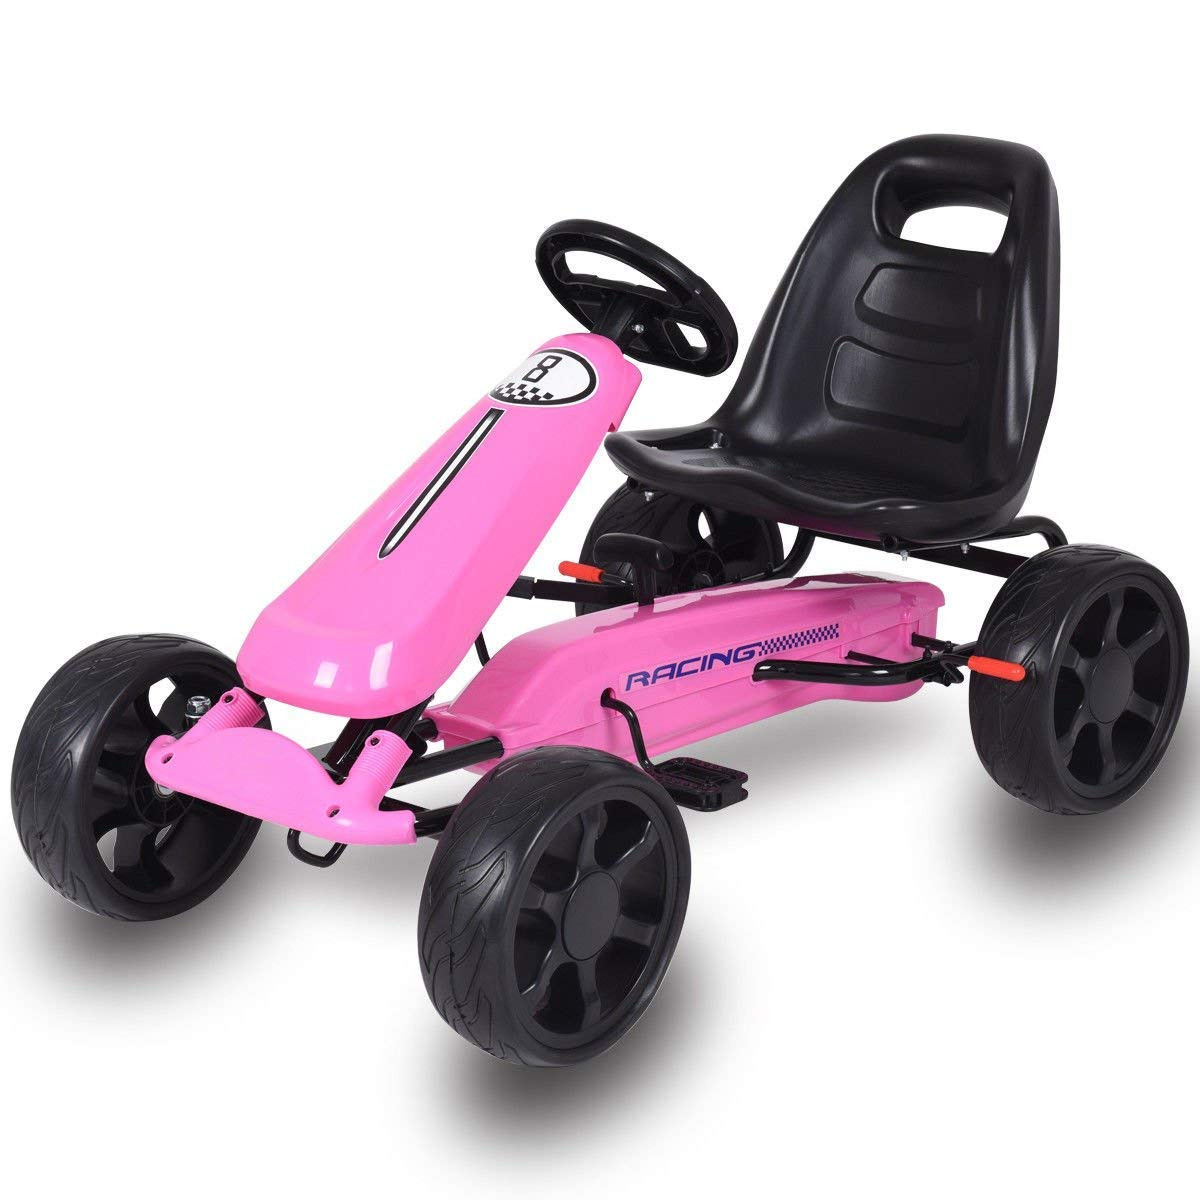 Costzon Go Kart, 4 Wheel Powered Ride On Toy, Kids' Pedal Cars for Outdoor, Racer Pedal Car with Clutch, Brake, EVA Rubber Tires, Adjustable Seat (Pink Go Kart)